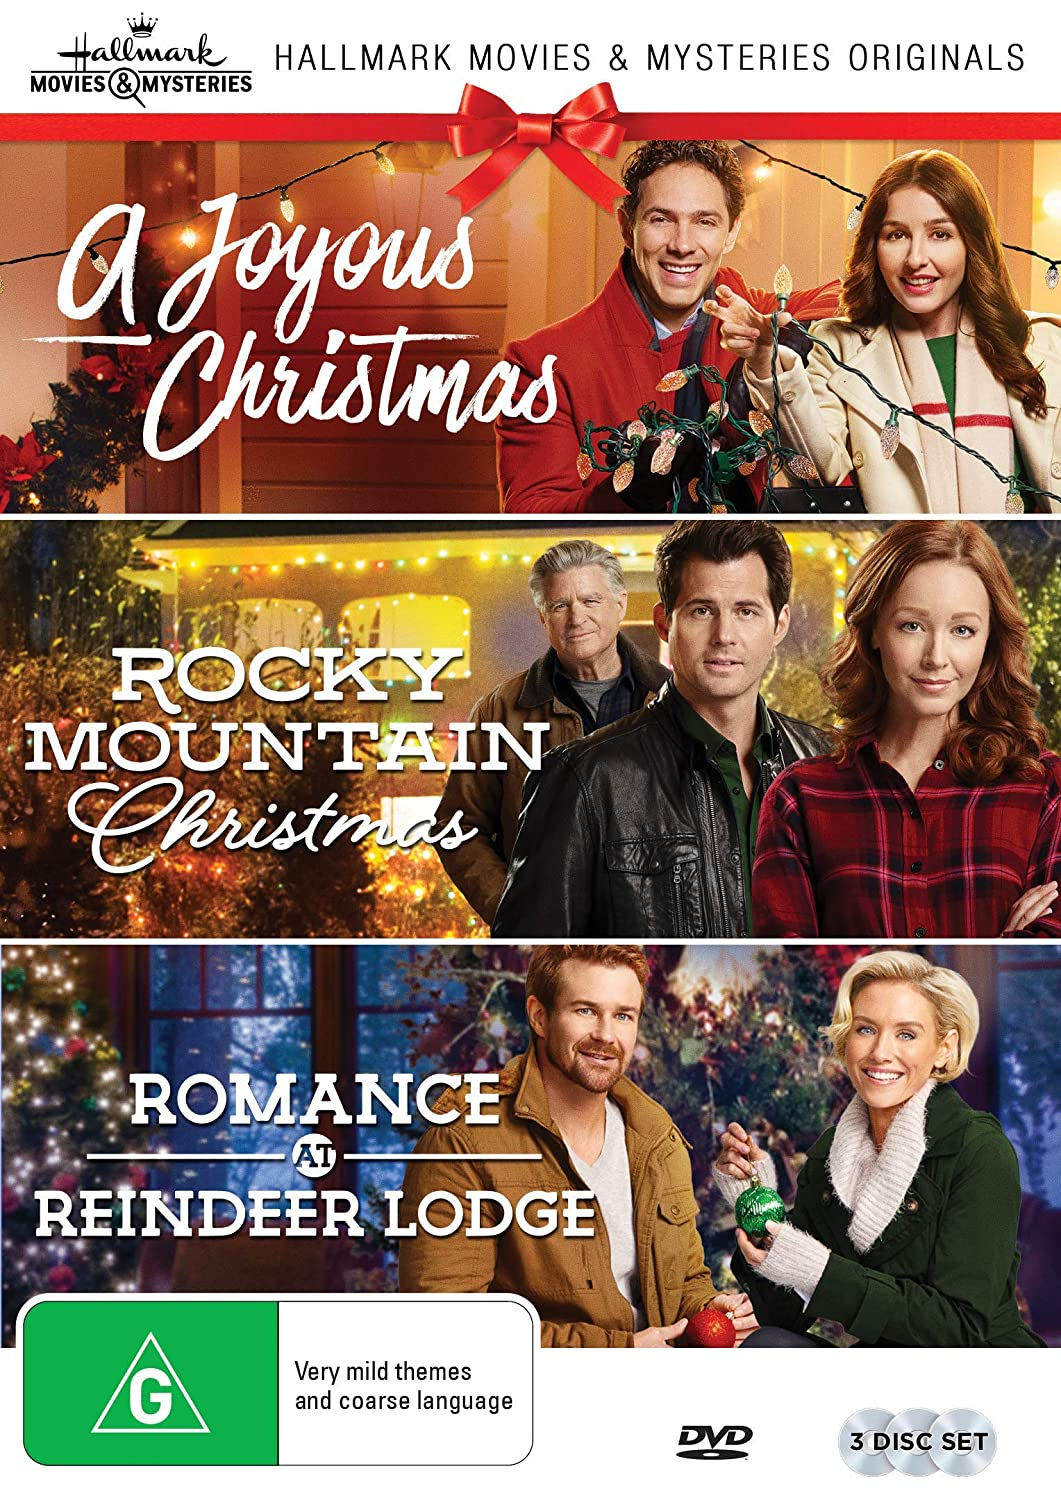 Amazon.com: Hallmark Christmas 3 Film Collection (A Joyous Christmas ...